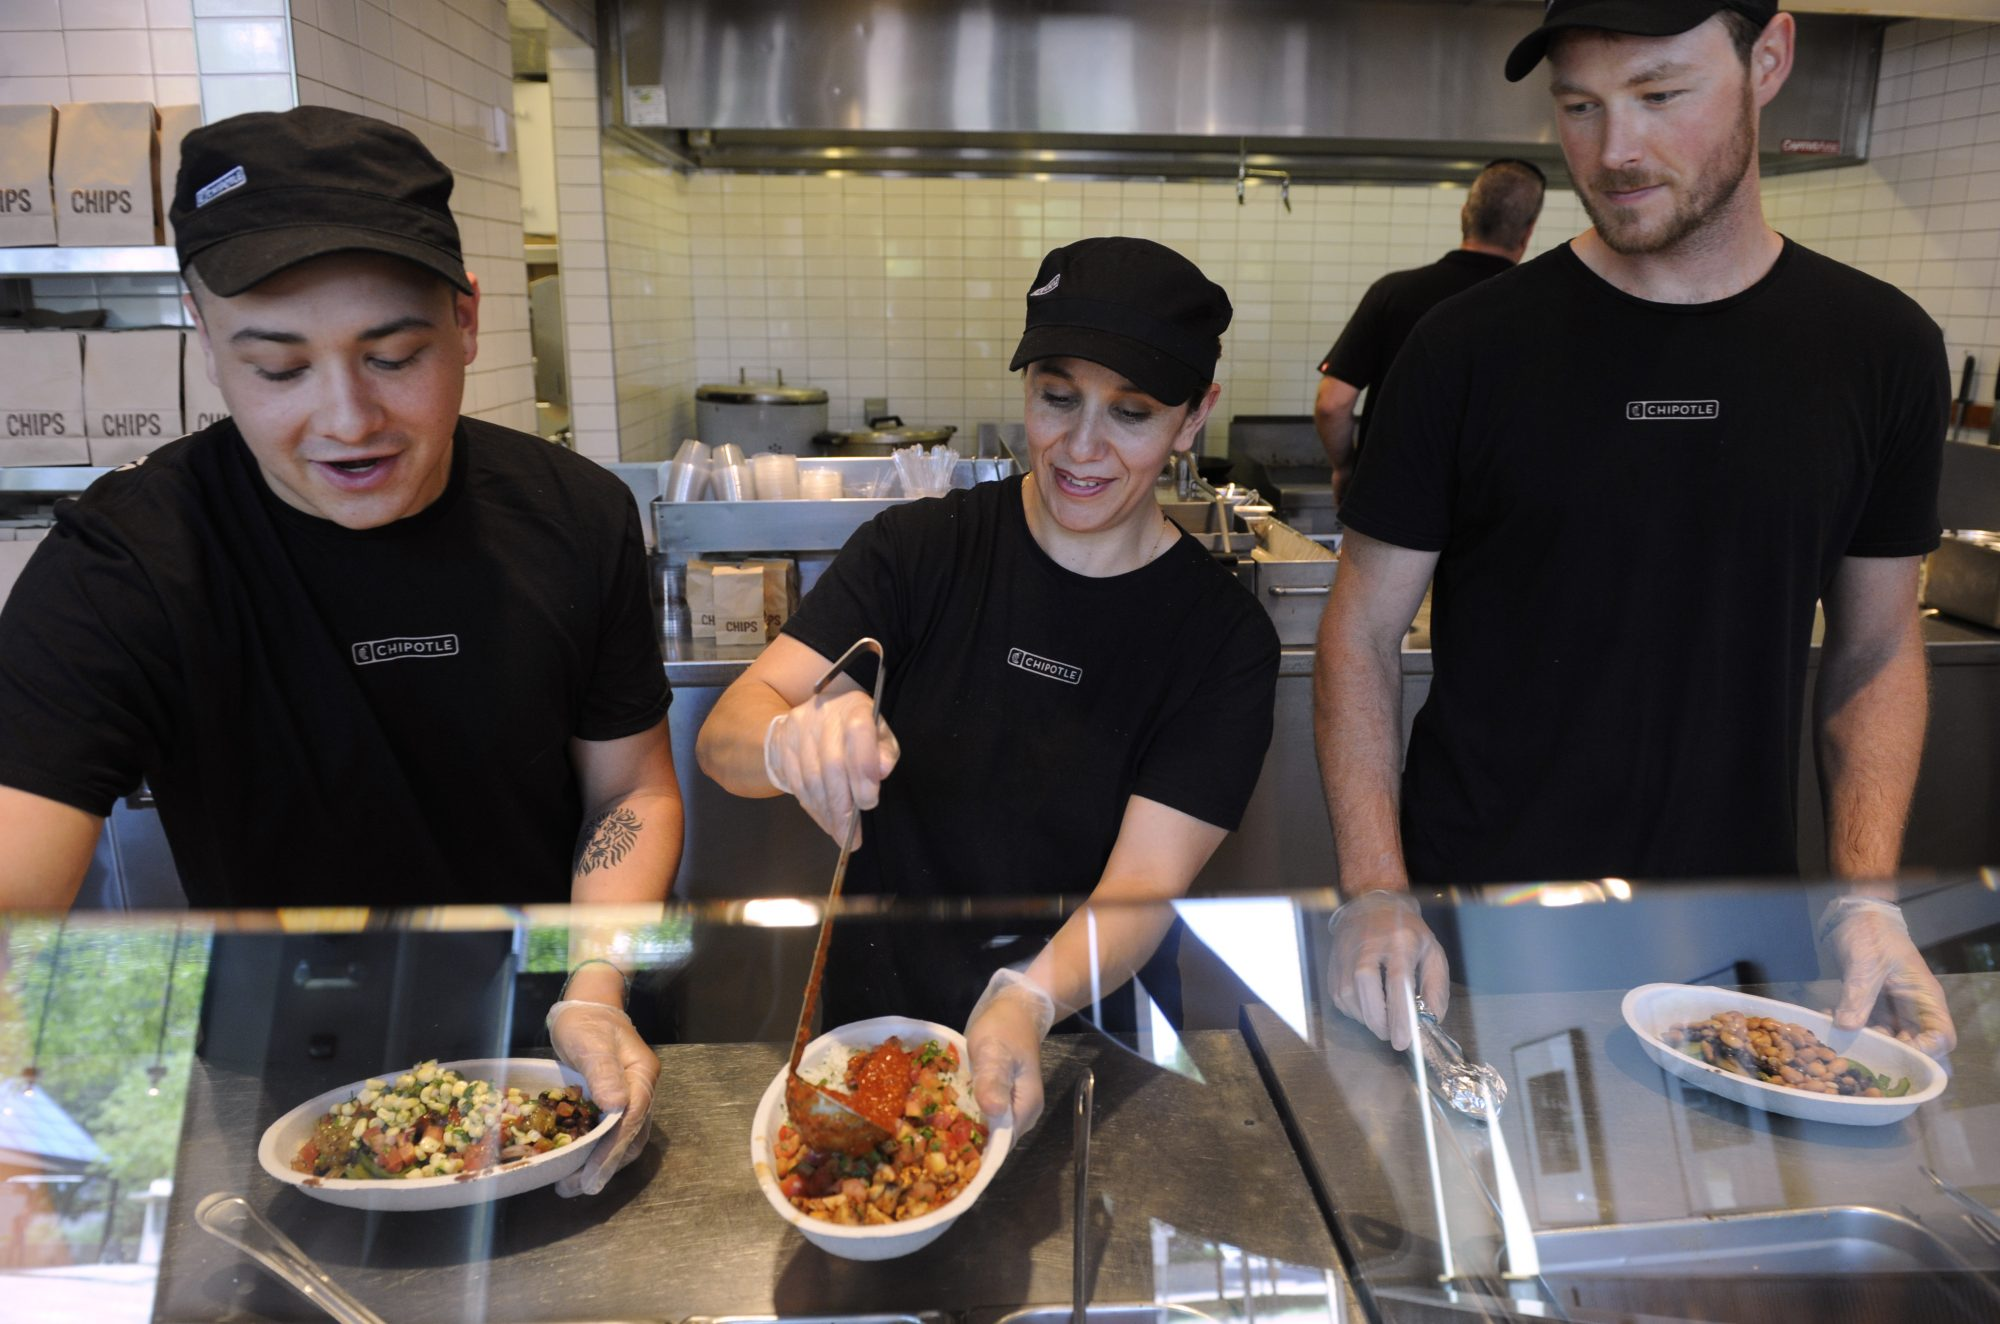 Employees at the Chipotle restaurant in LoDo at 1480 16th ST. in Denver perform all the prep work needed to get ready for the lunch crowd on Friday, June 29, 2012. Getting ready for the shift meeting are from left to right, Josh Pisani, Angelica...